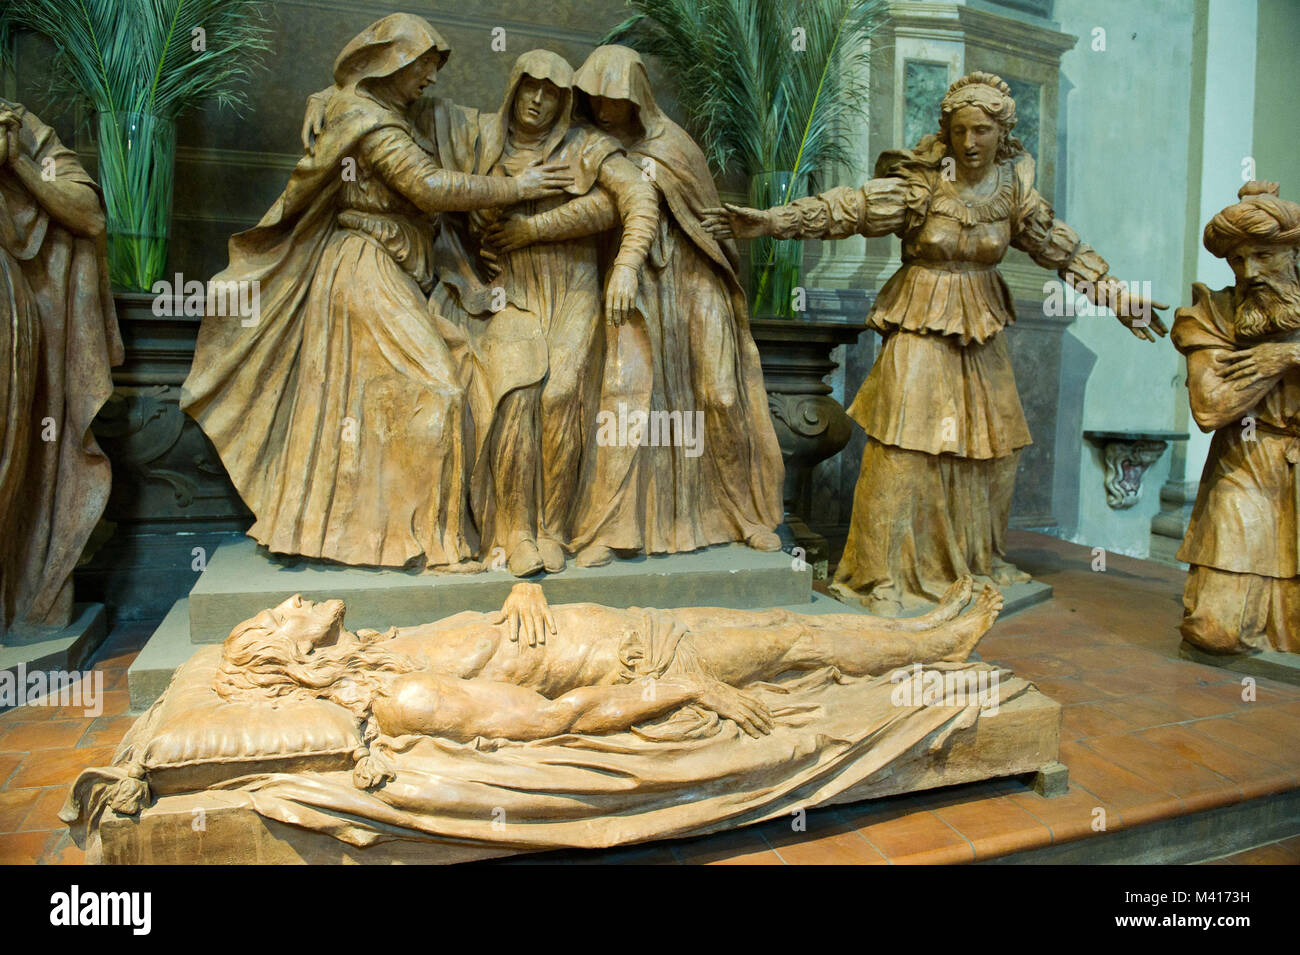 Italy, Emilia Romagna, Bologna, St. Peter's cathedral, the sculptural group in terracotta called The Fallen - Stock Image